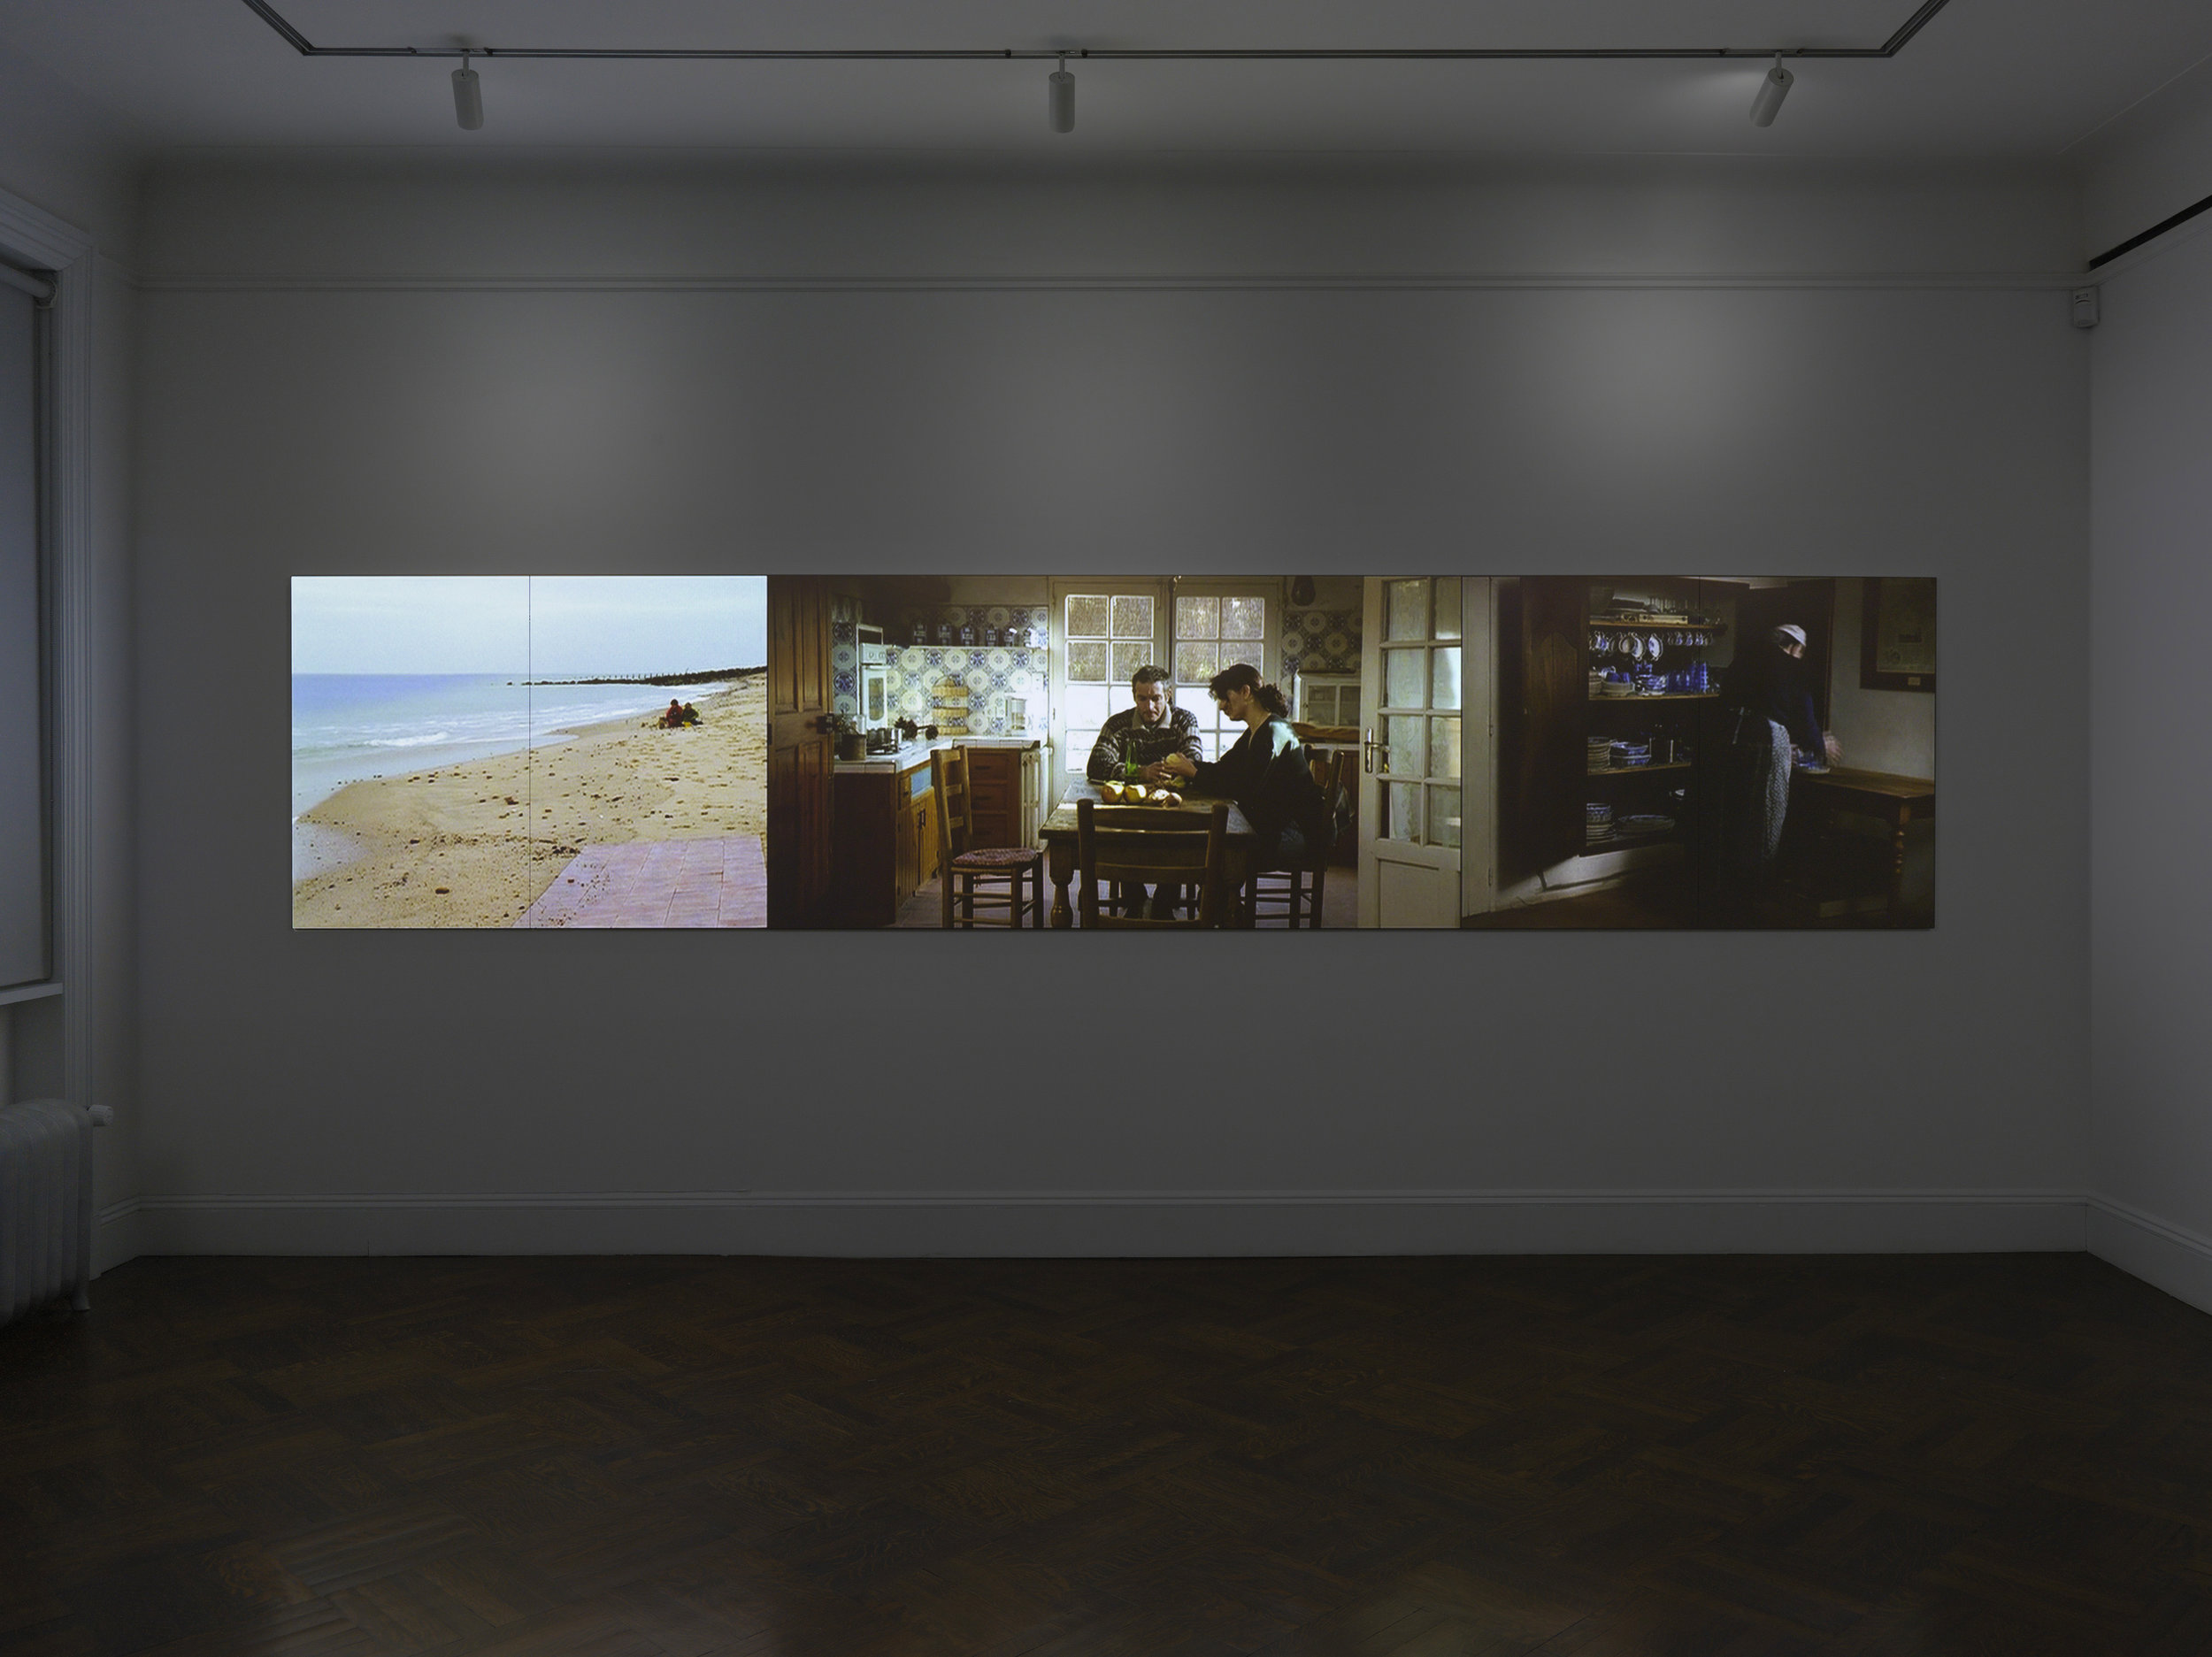 Le Triptyque de Noirmoutier, 2004. The first two editions, at MoMa and The Cartier Foundation, both used pullies to shutter projectors. This new version uses wireless technology and computer playback systems. Agnes Varda, Installation view, 2017 Blum & Poe, New York Photo: Genevieve Hanson Courtesy of the artist and Blum & Poe, Los Angeles/New York/Tokyo